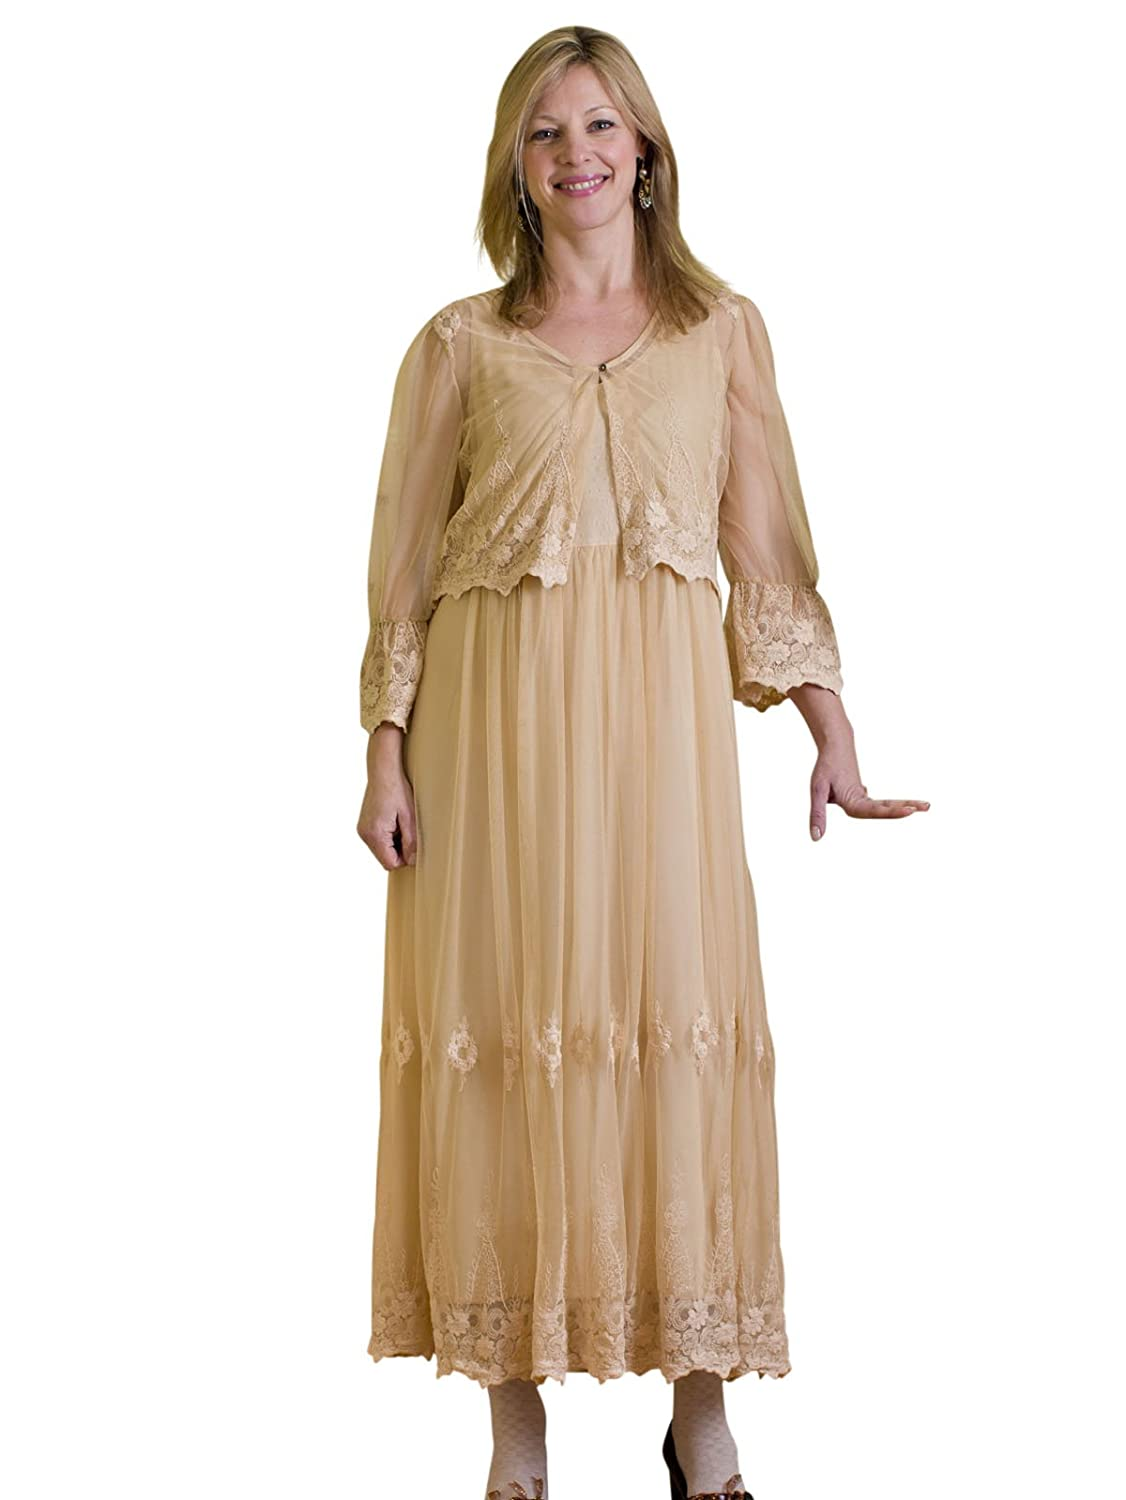 Victorian Costume Dresses & Skirts for Sale Genevieve Dress $124.50 AT vintagedancer.com